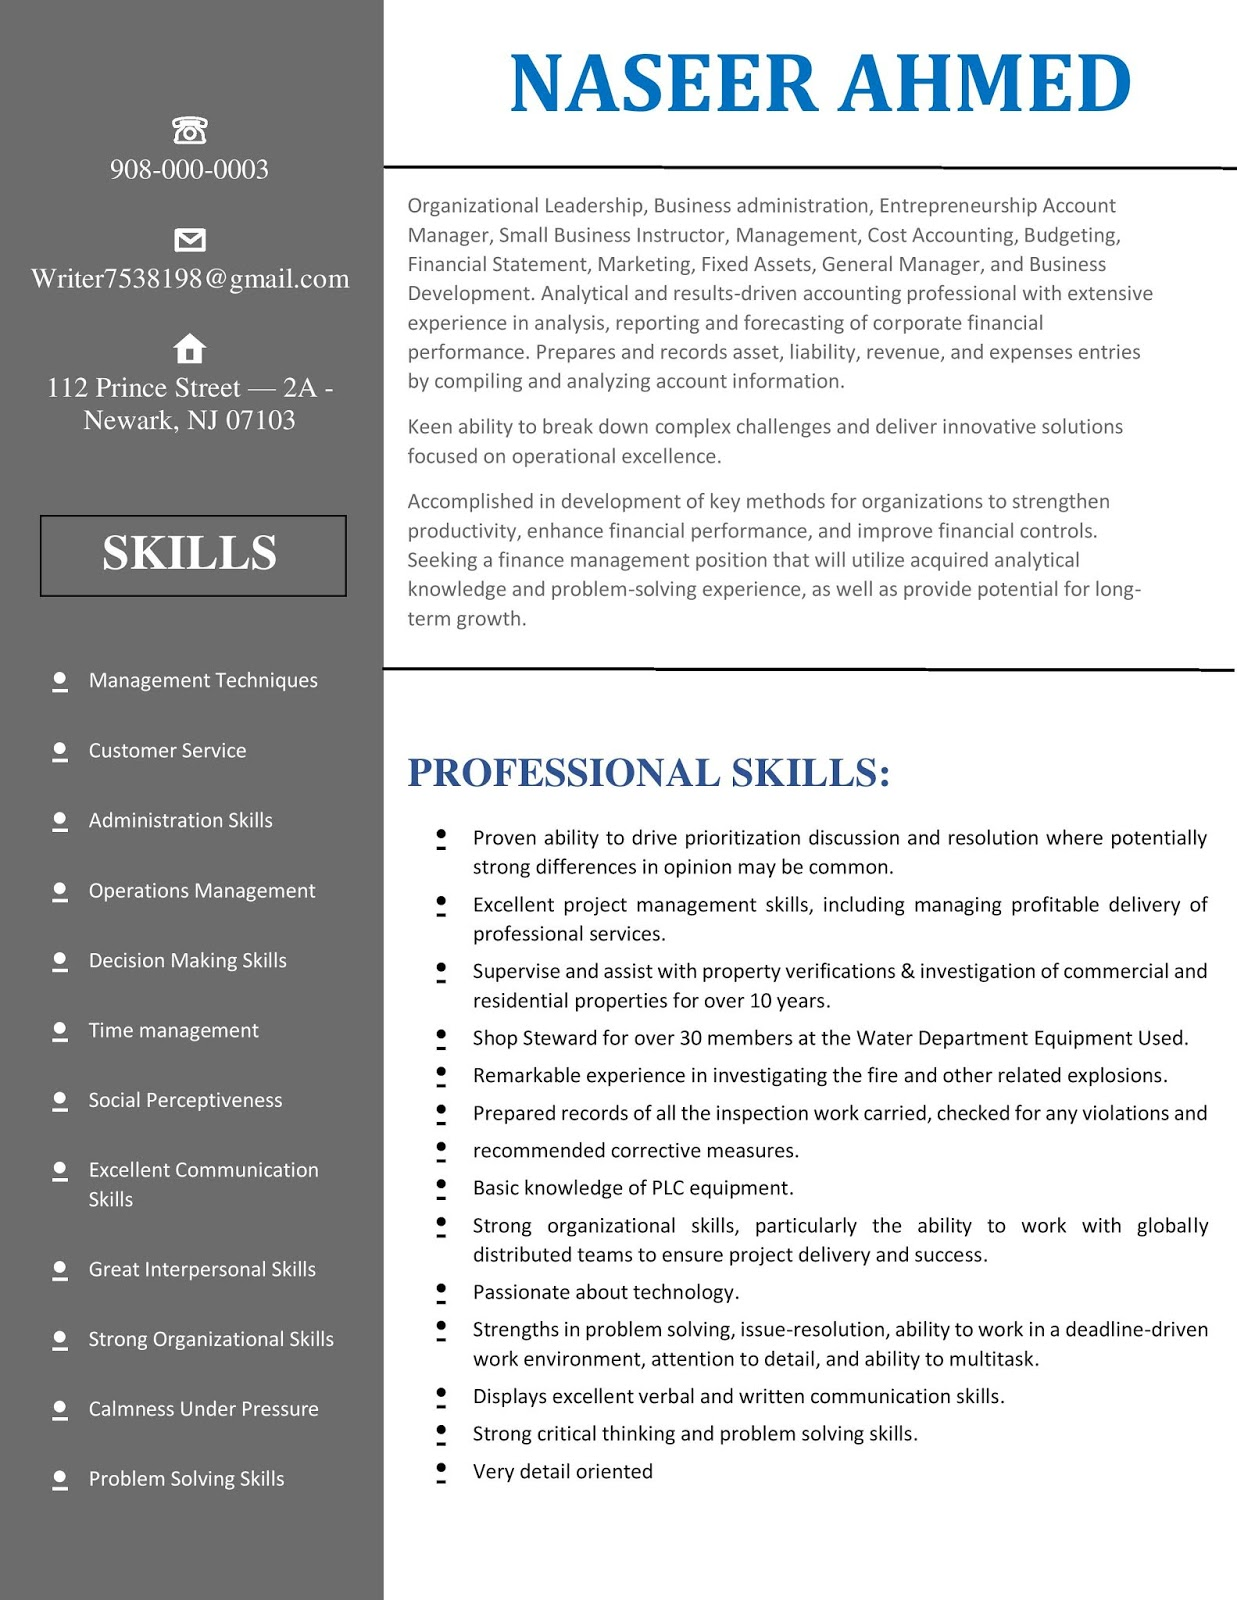 Accountant Resume Cv Ms Word Template Sample With Summary Skills